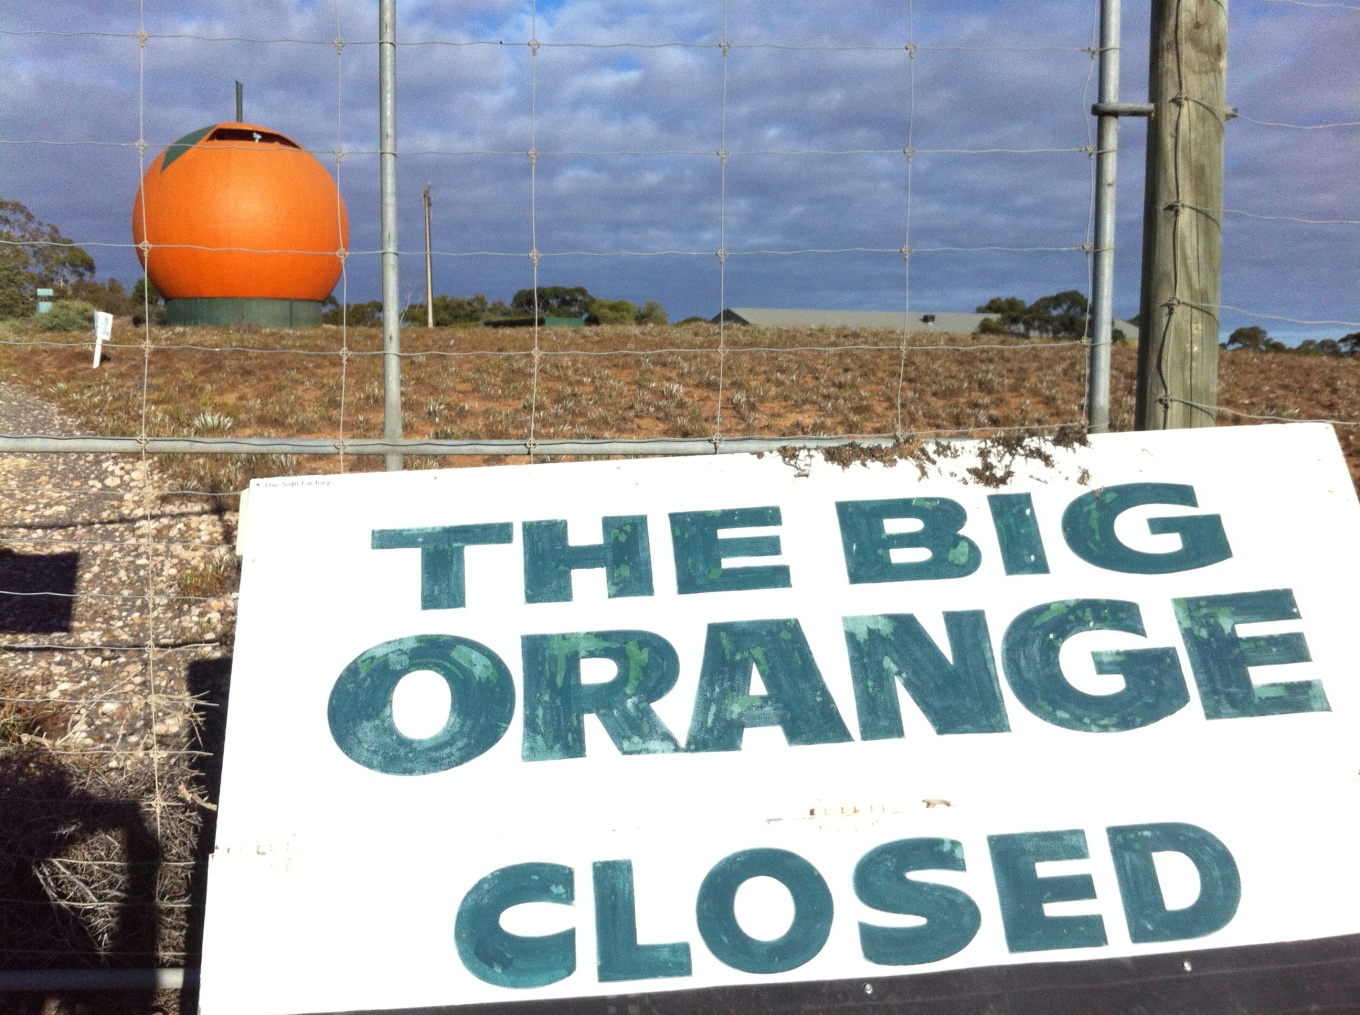 Big Orange is closed!